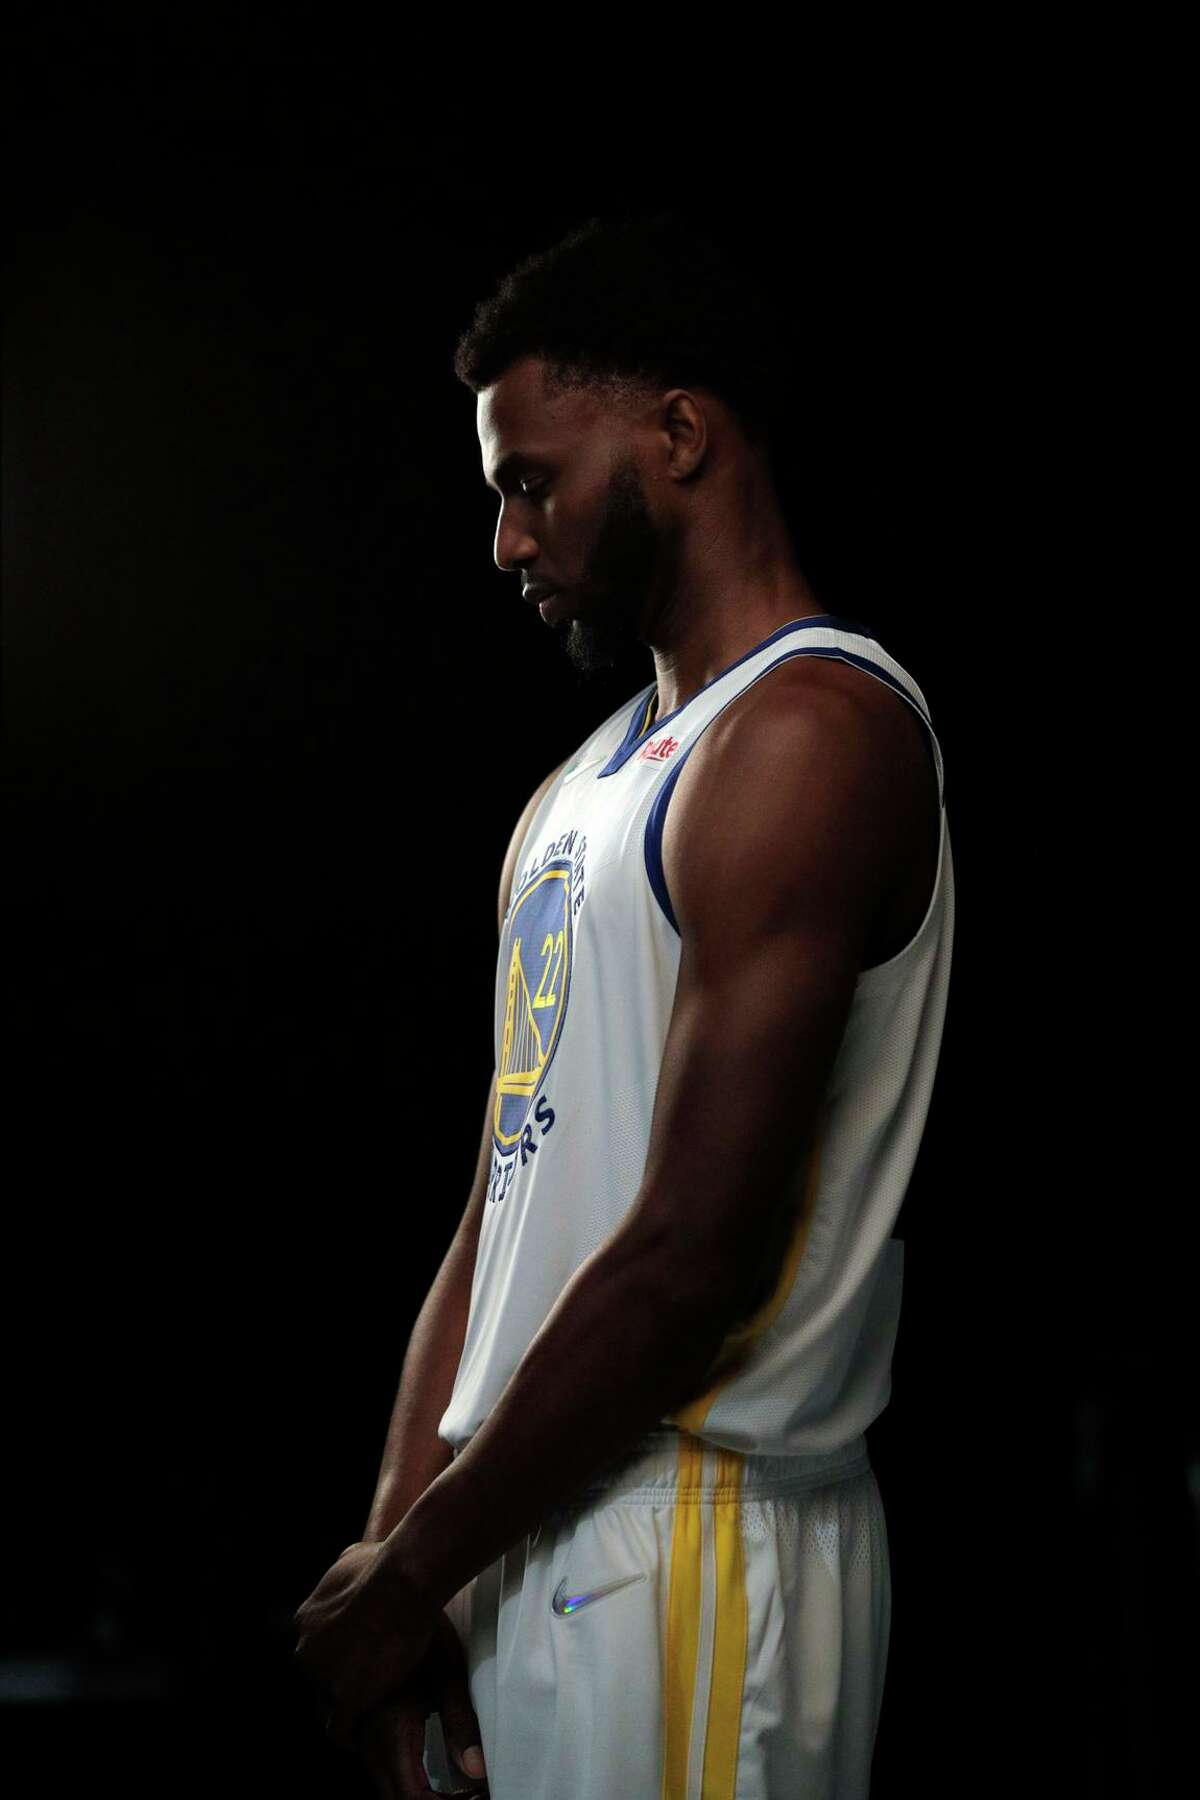 Andrew Wiggins of the Golden State Warriors has said he doesn't plan to get vaccinated against COVID-19. He's in the minority in the majority-Black NBA, where more than 90% of players are estimated to be fully vaccinated.